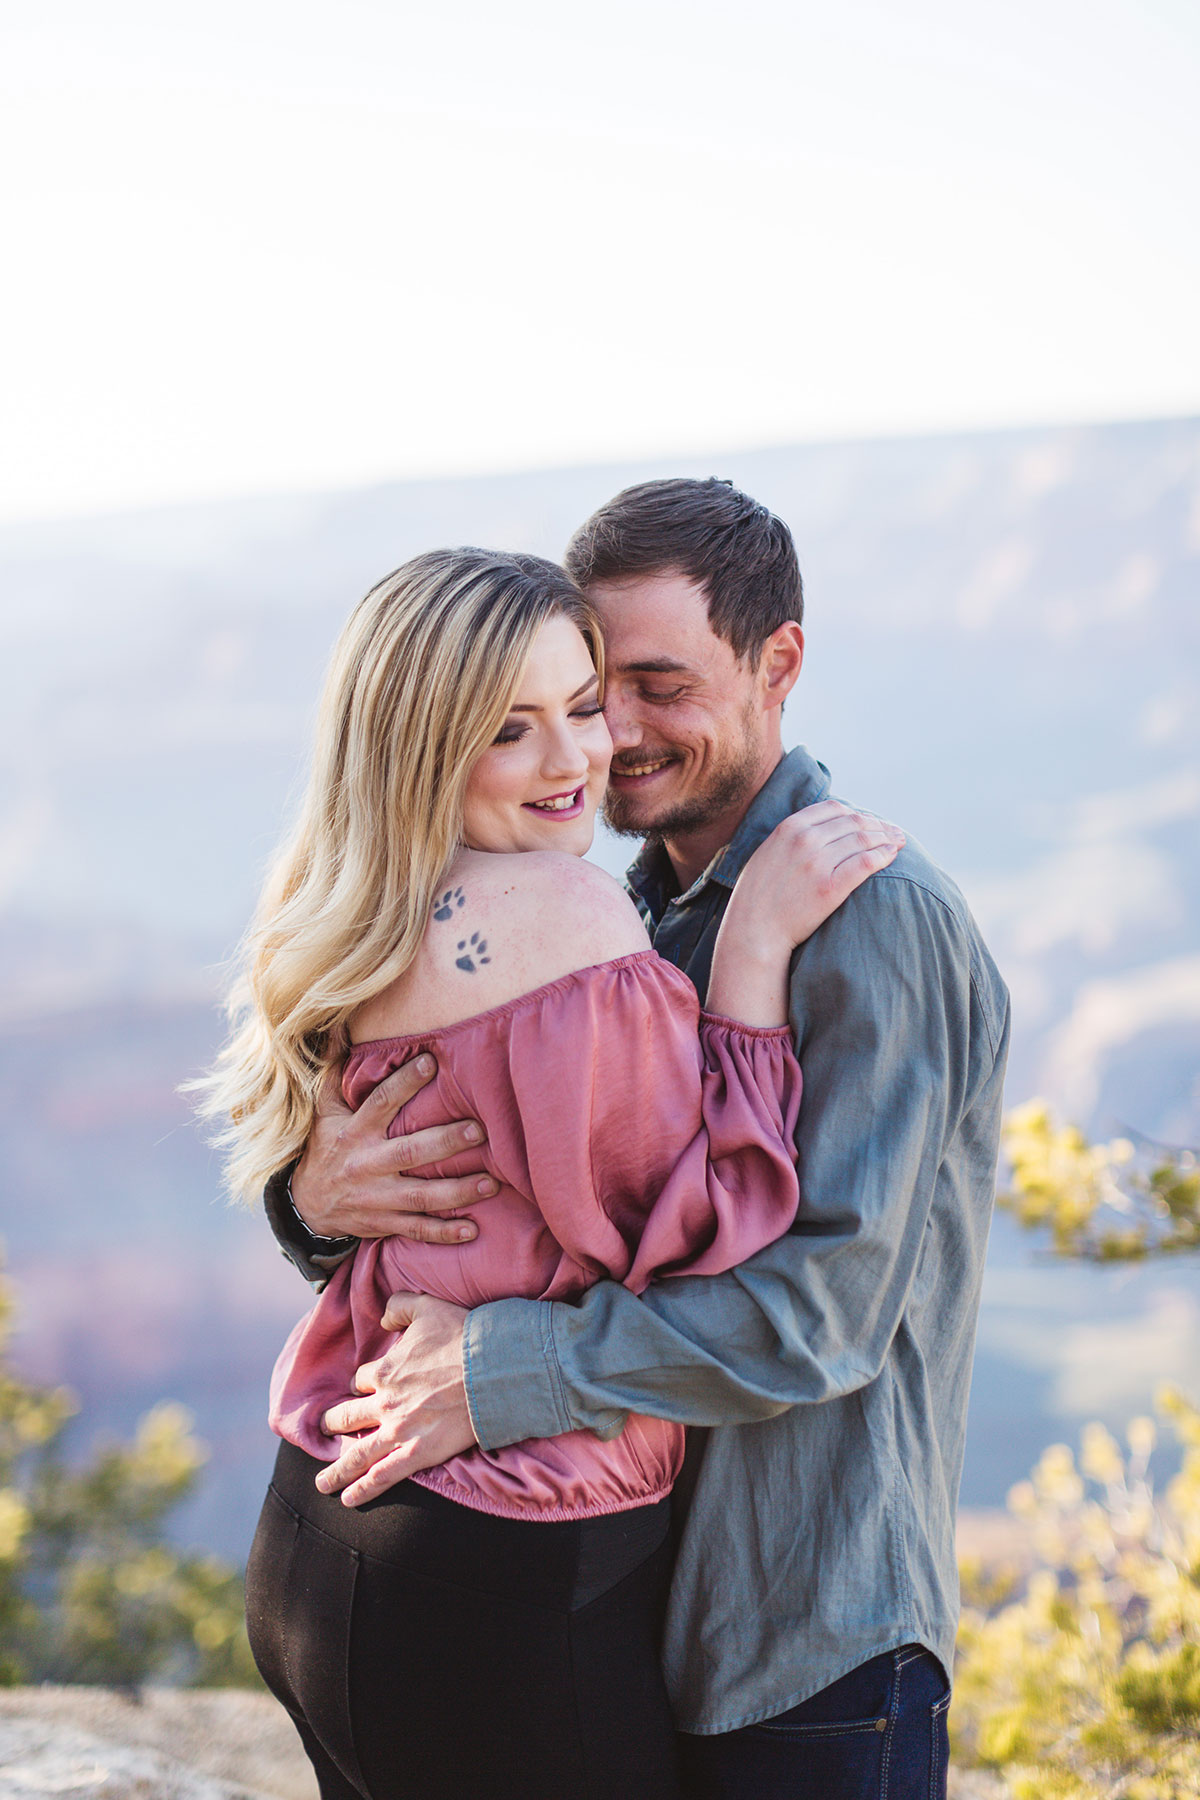 soft light grand canyon engaged couples photography